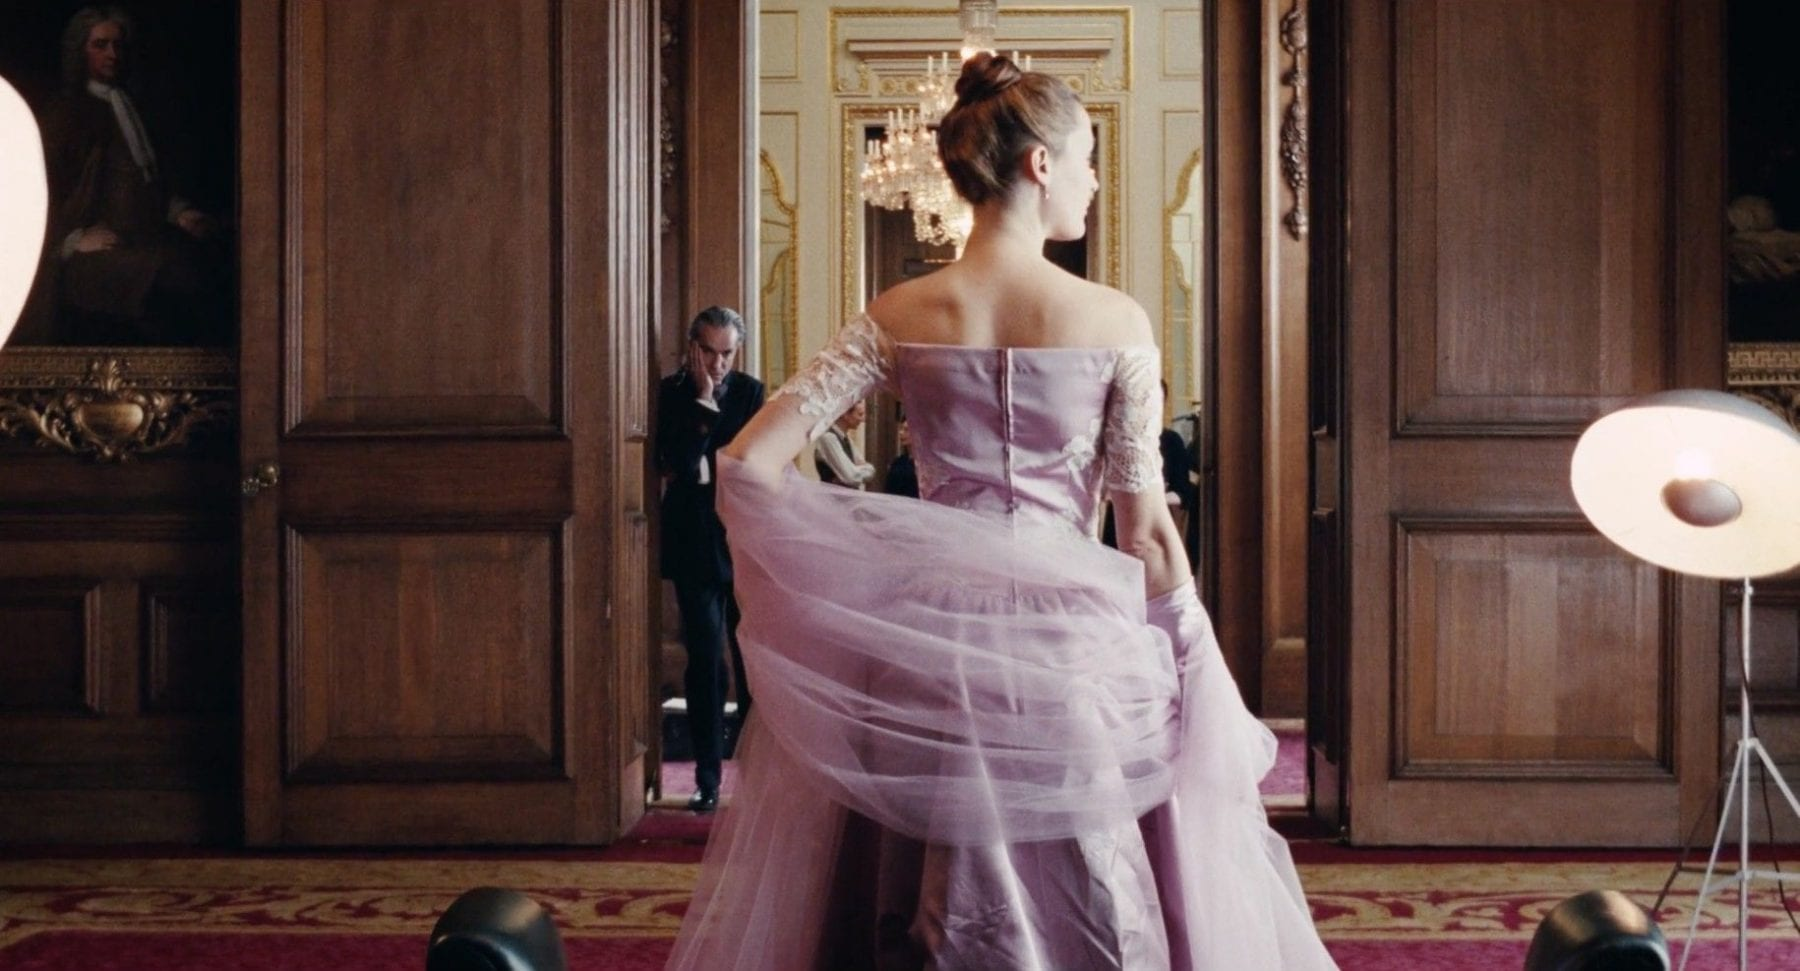 alma phantom thread vicky krieps